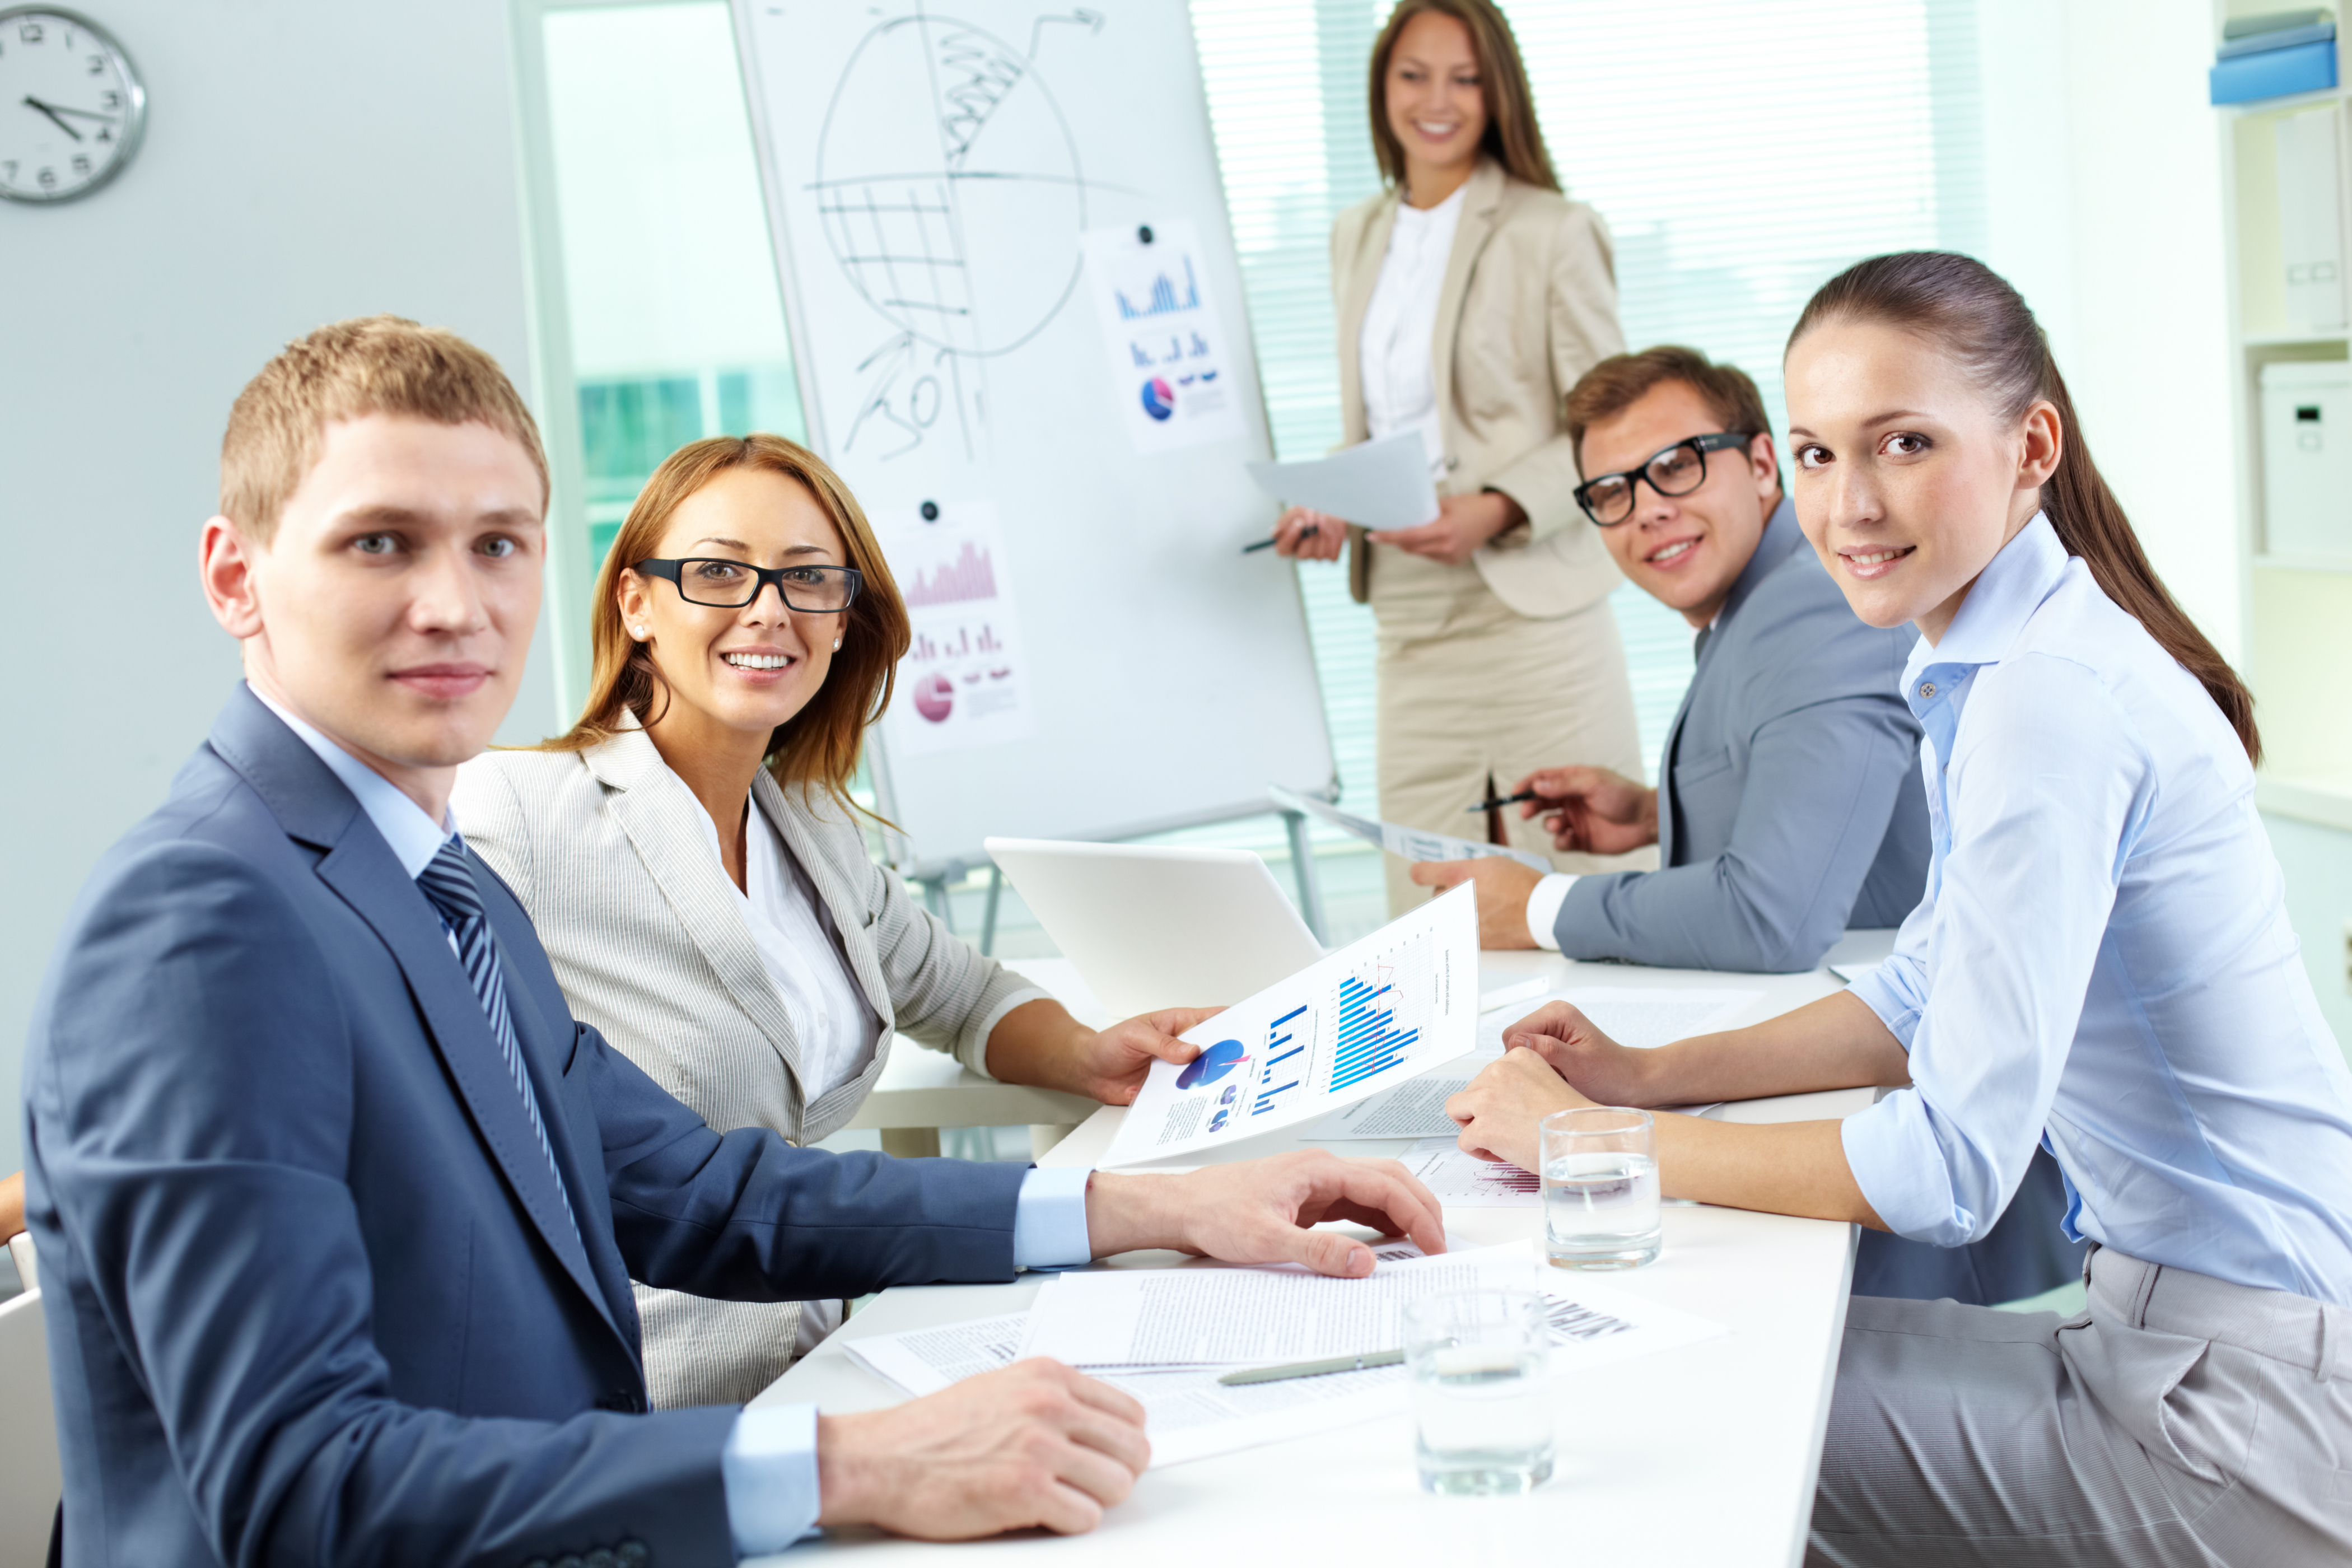 Projectize your Project Meetings – Project Management Hut